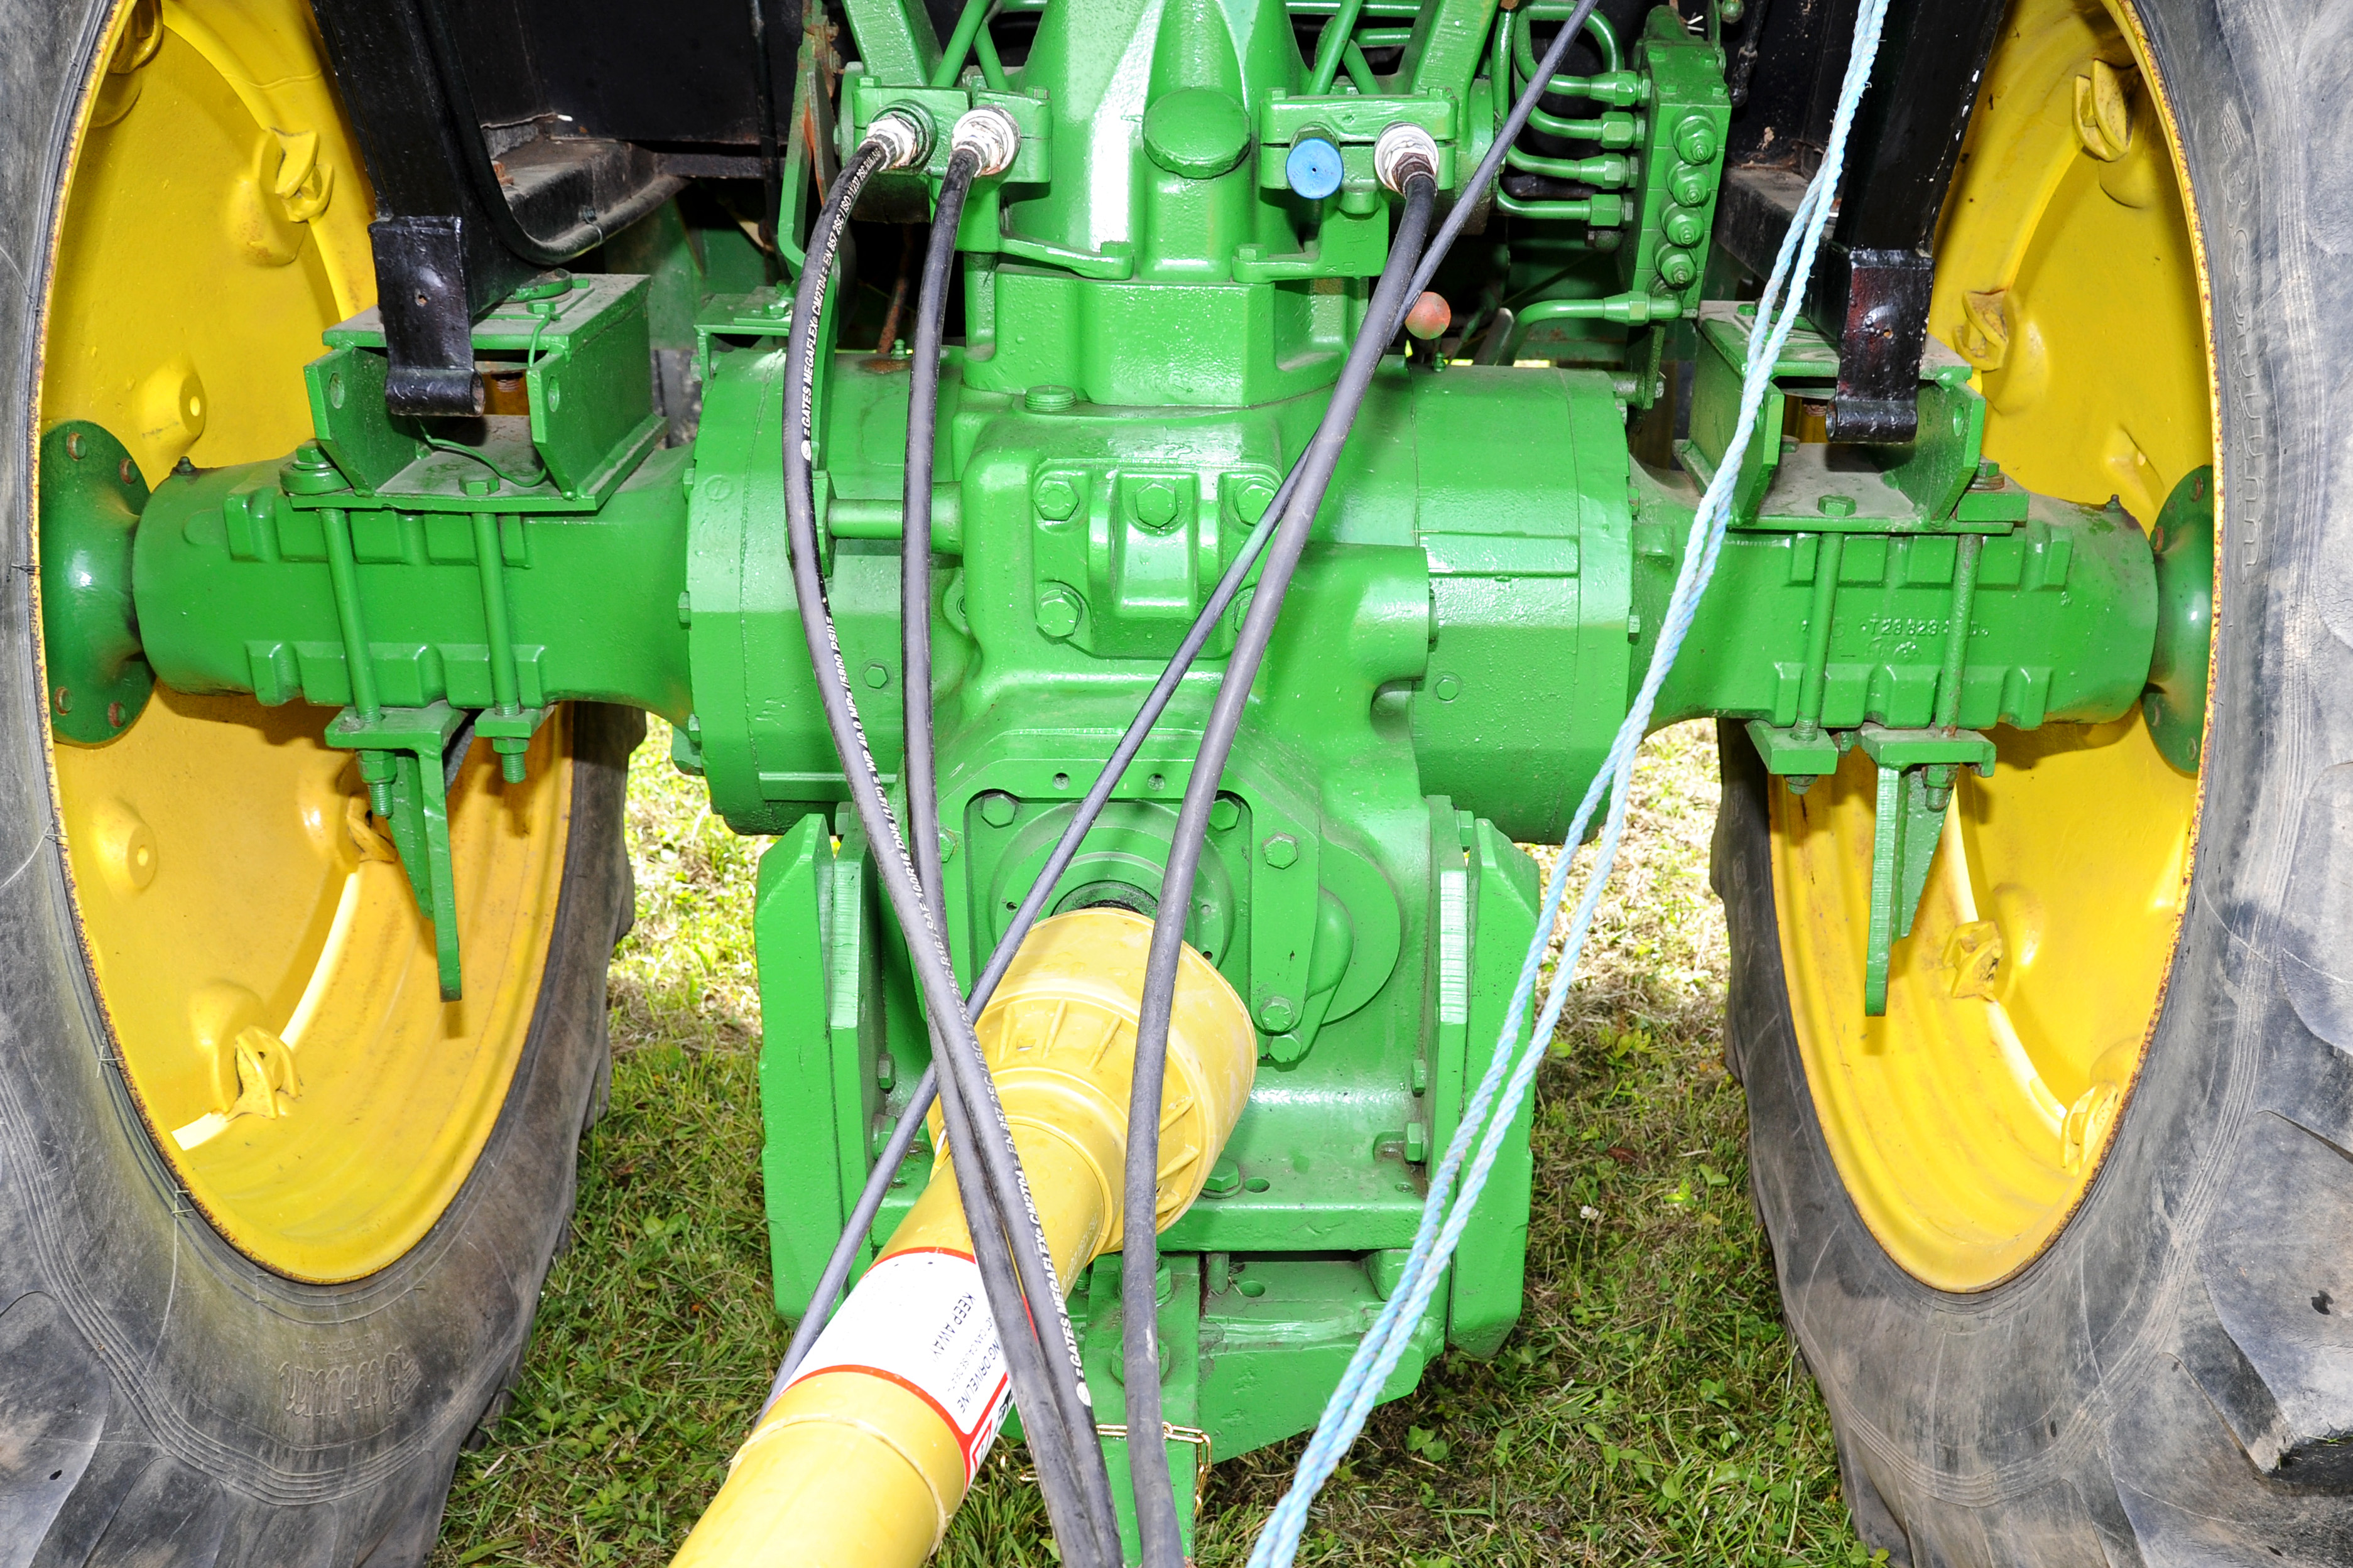 Classic corner: 6-cylinder Deere from the 1970s is a cherished Cork